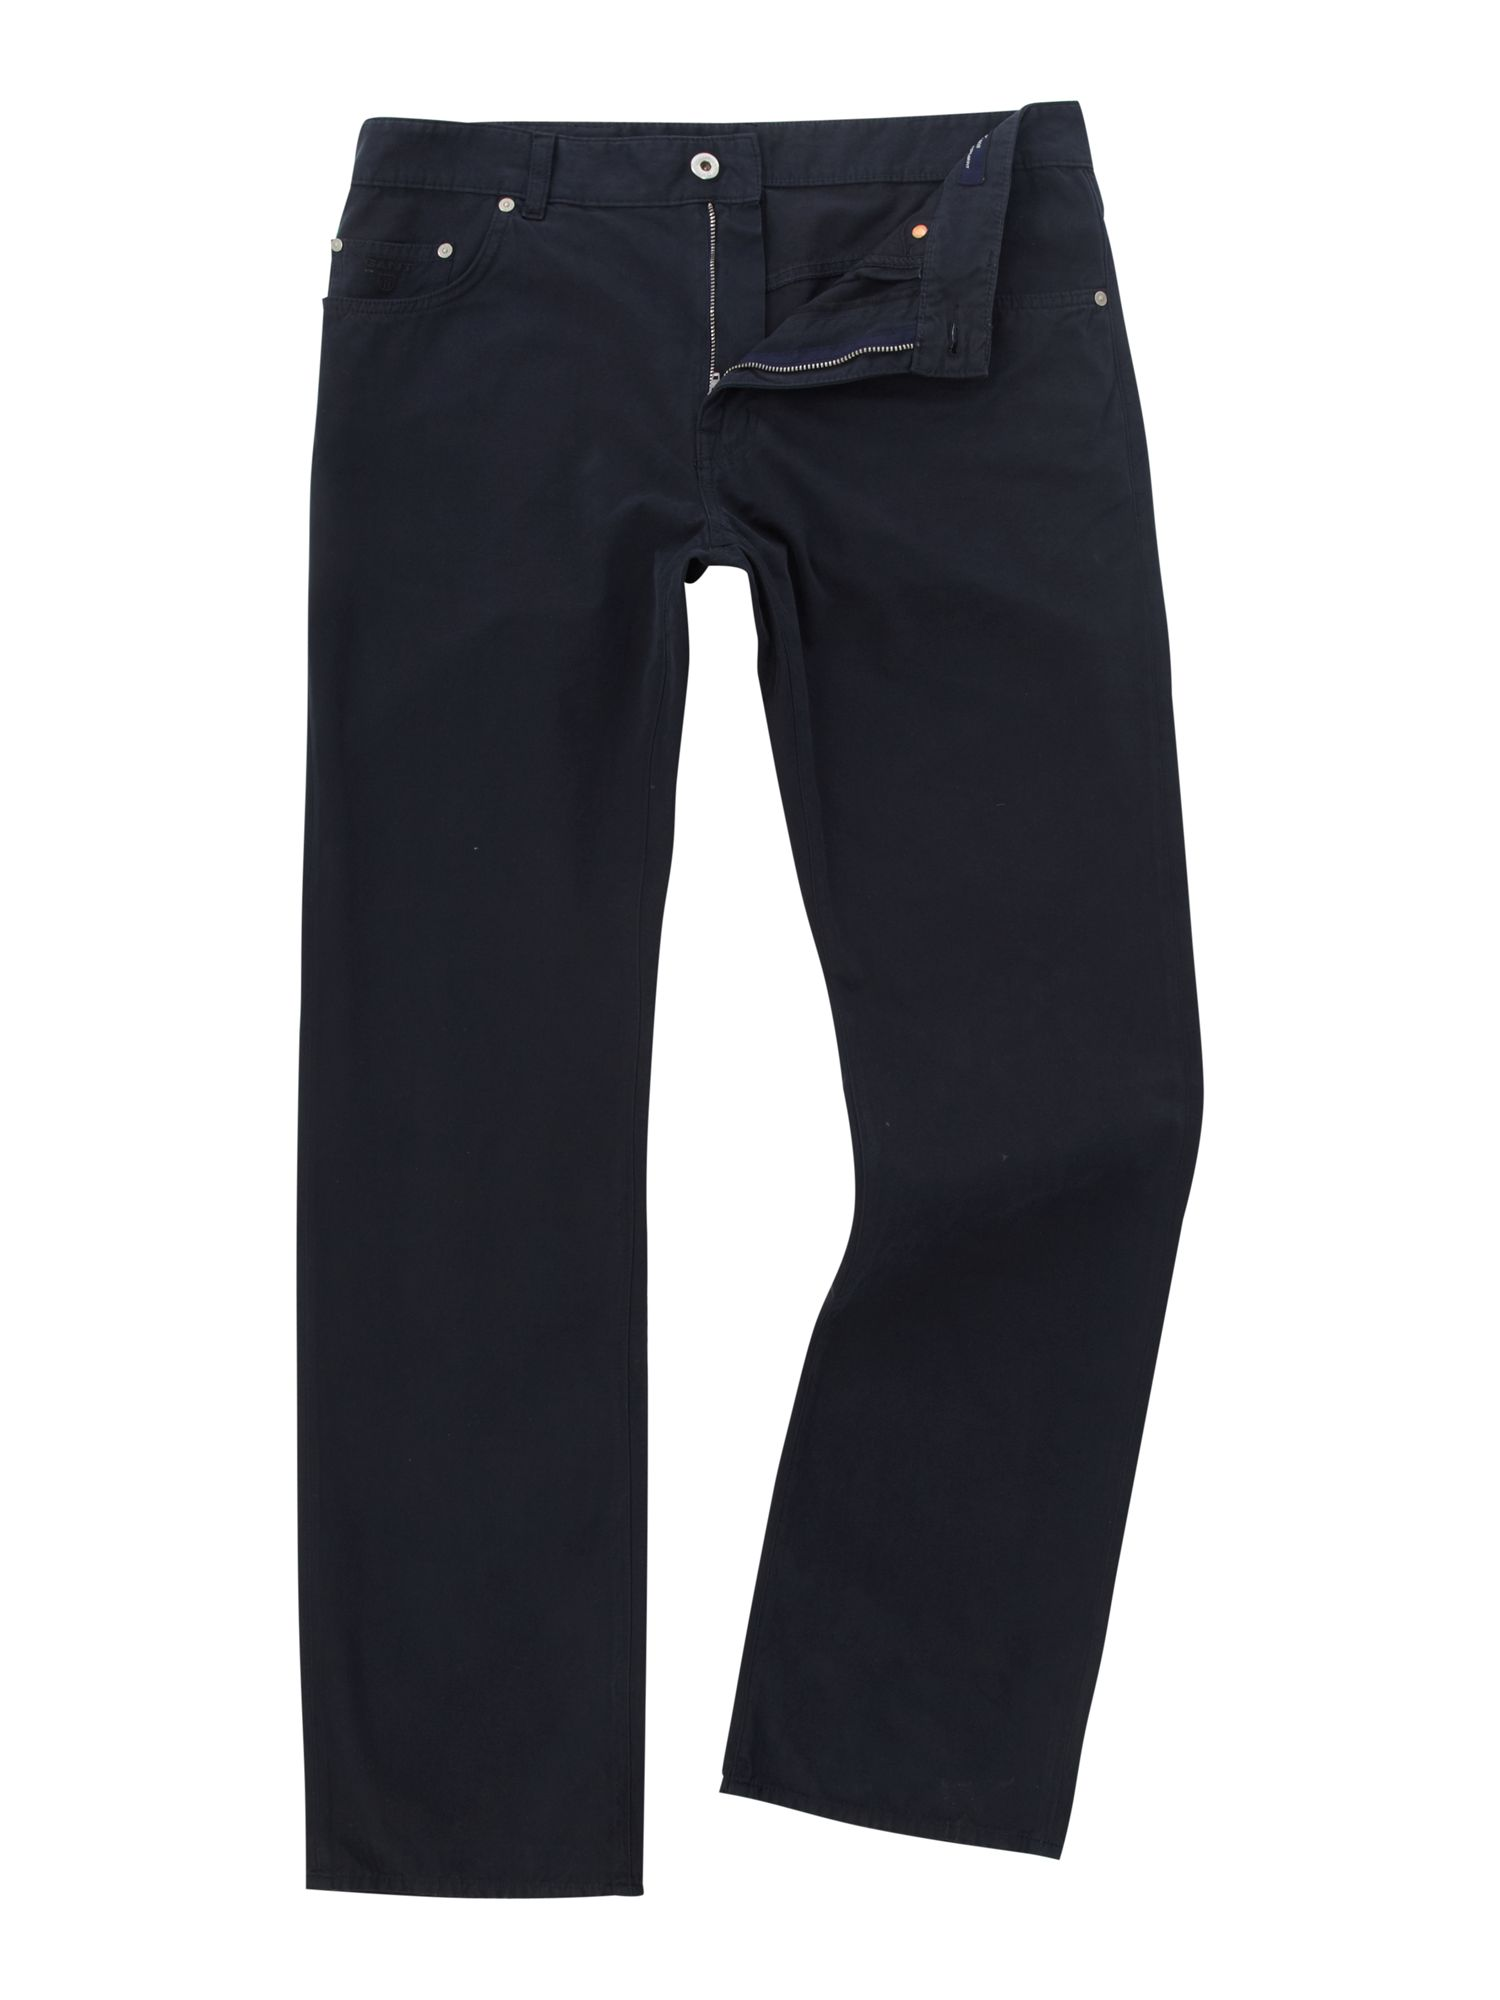 Regular fit canyon canvas jeans